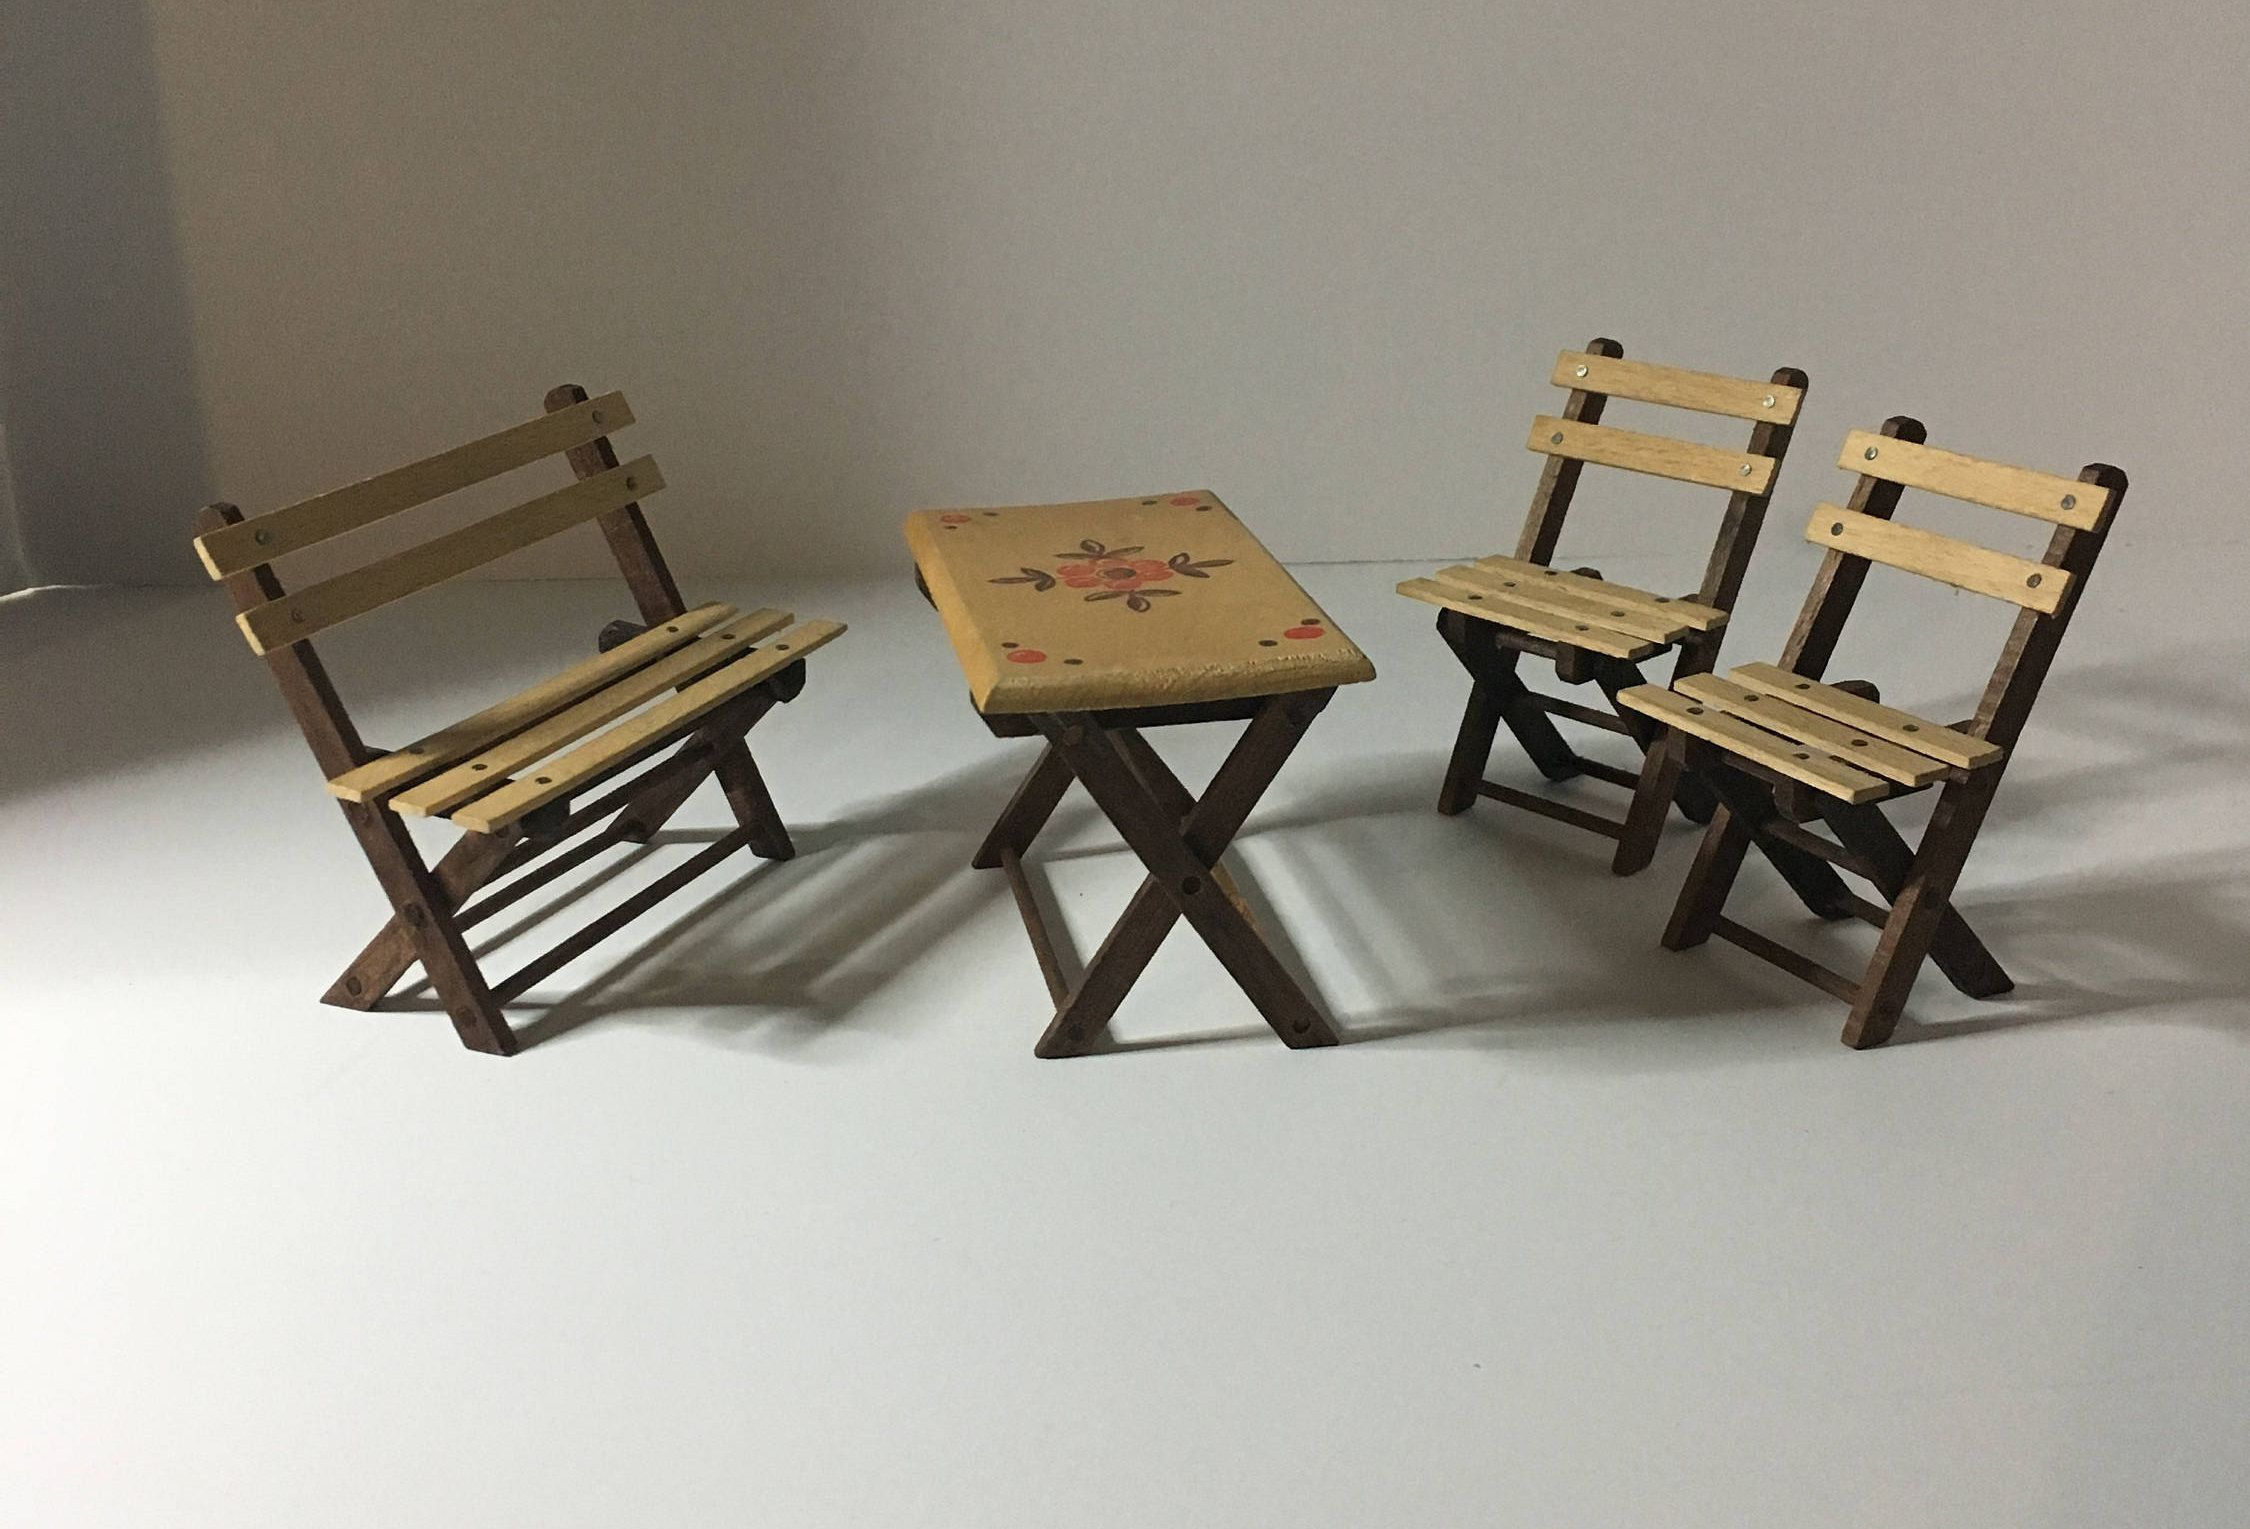 Miniature wood patio picnic table summer folding bench chairs with ...